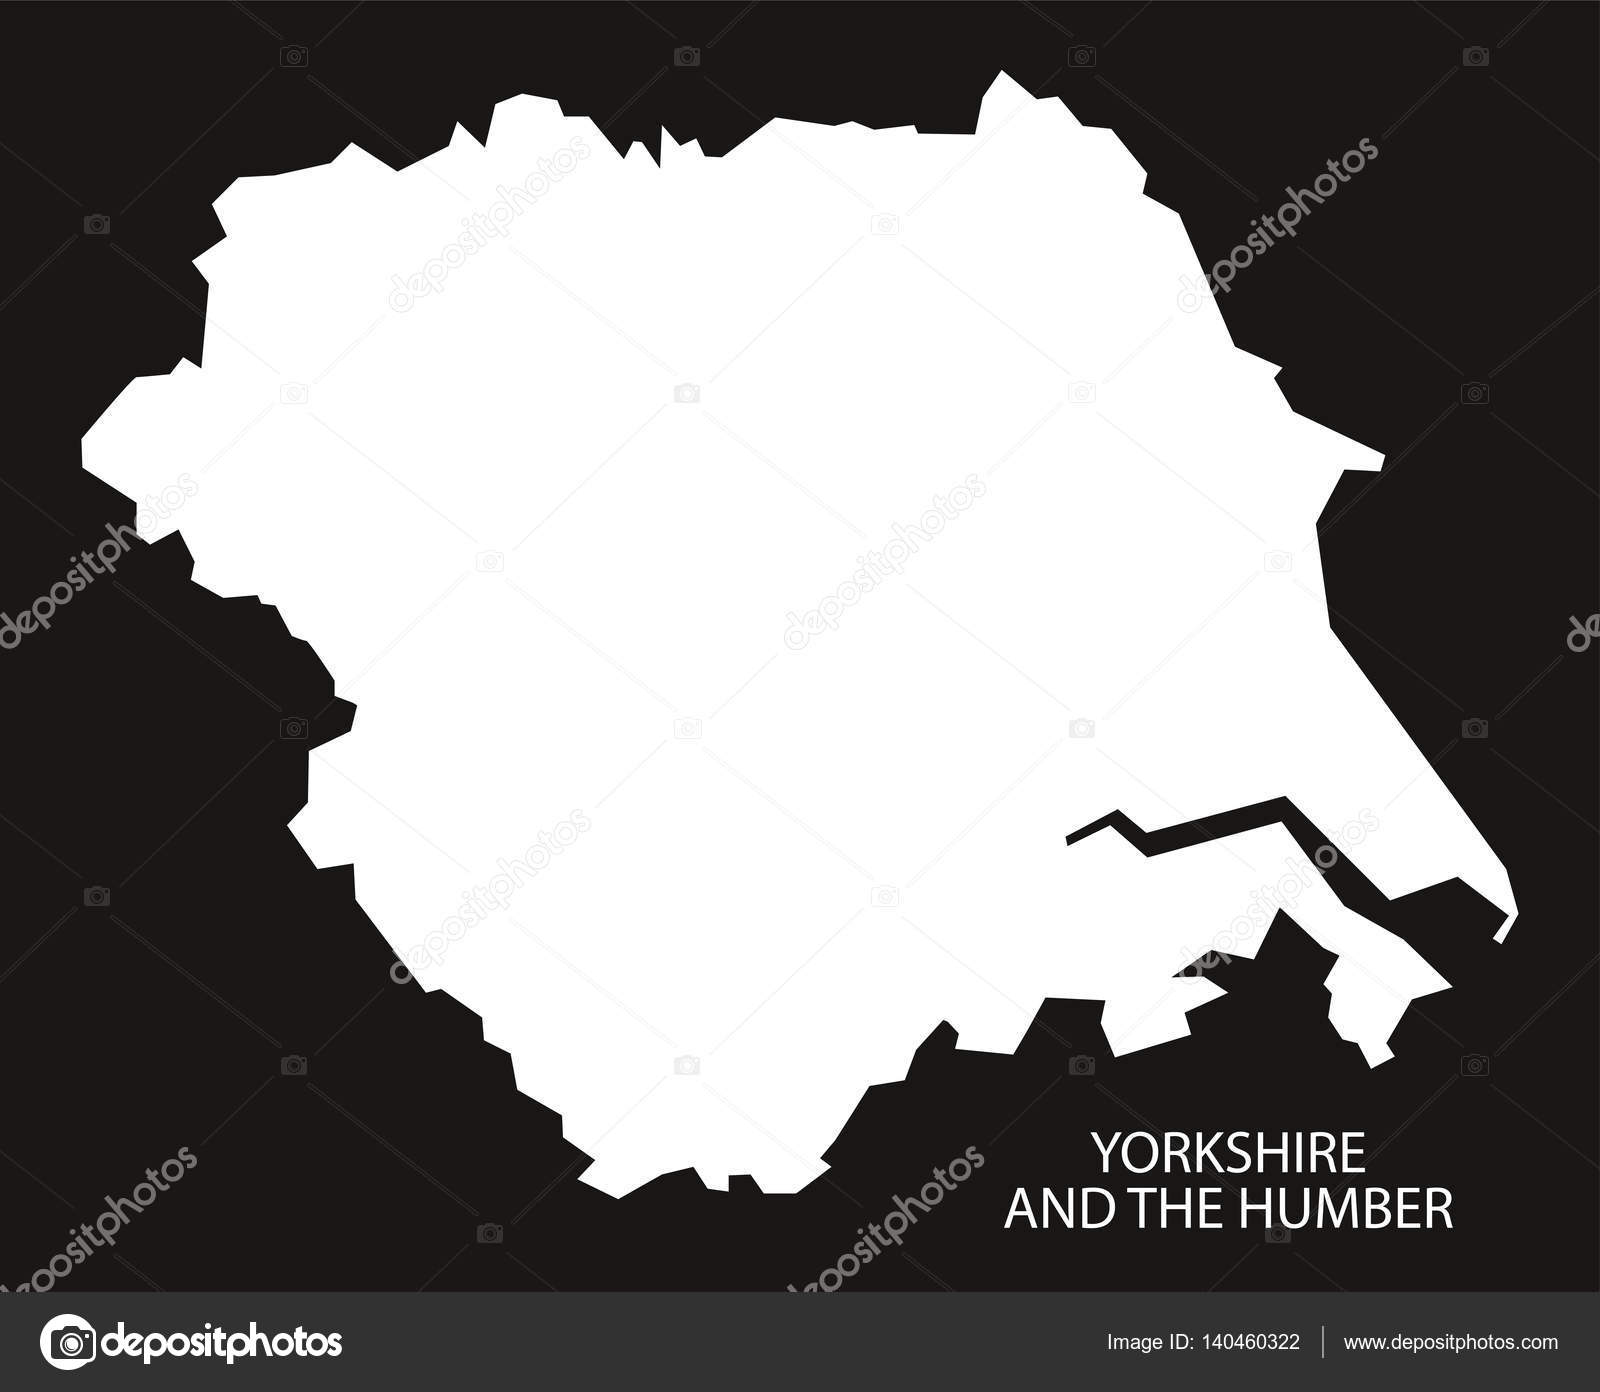 Map Of England Showing Yorkshire.Yorkshire And The Humber England Map Black Inverted Stock Vector